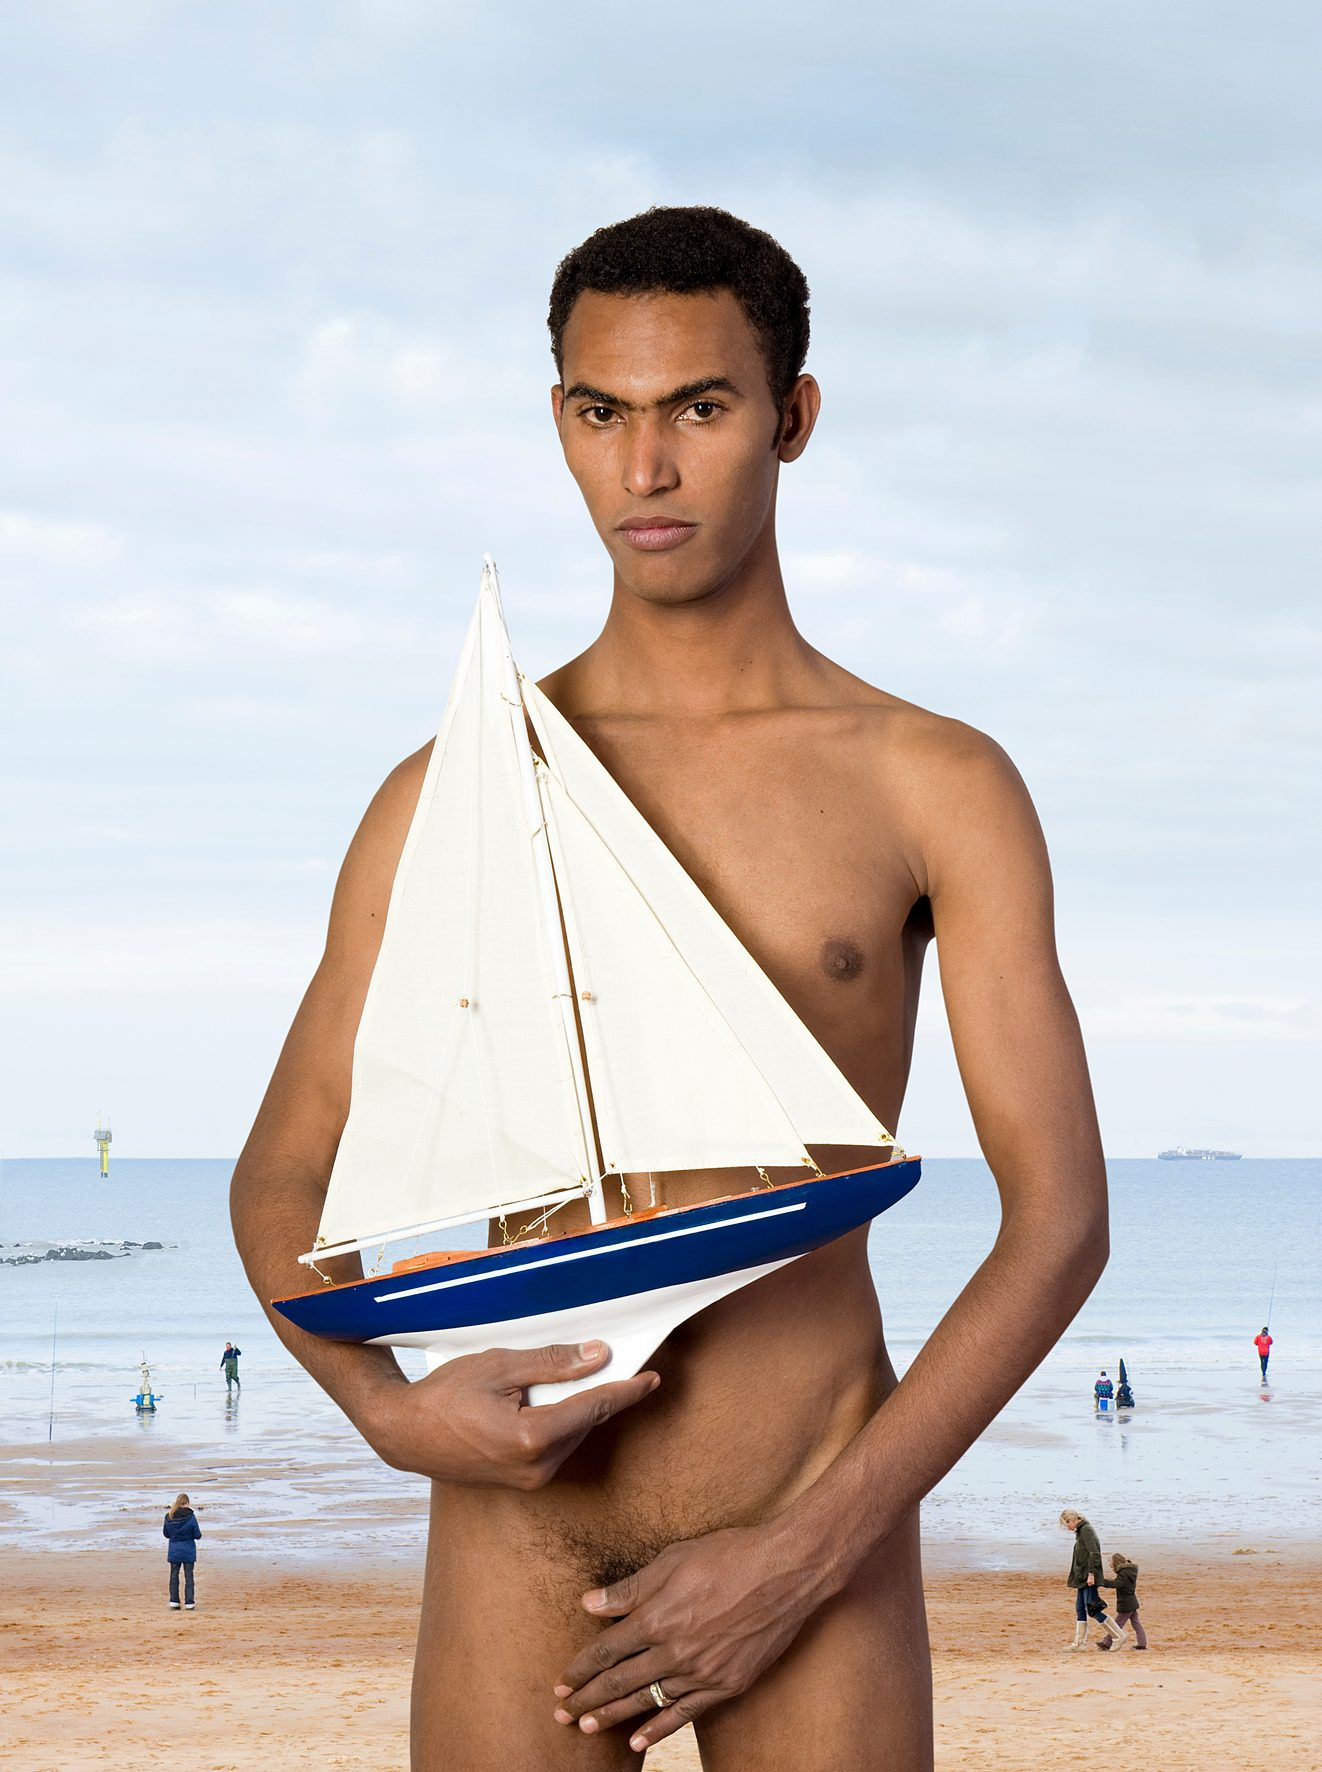 Untitled, For a Definition of The Nude Series (Man w/ Boat)